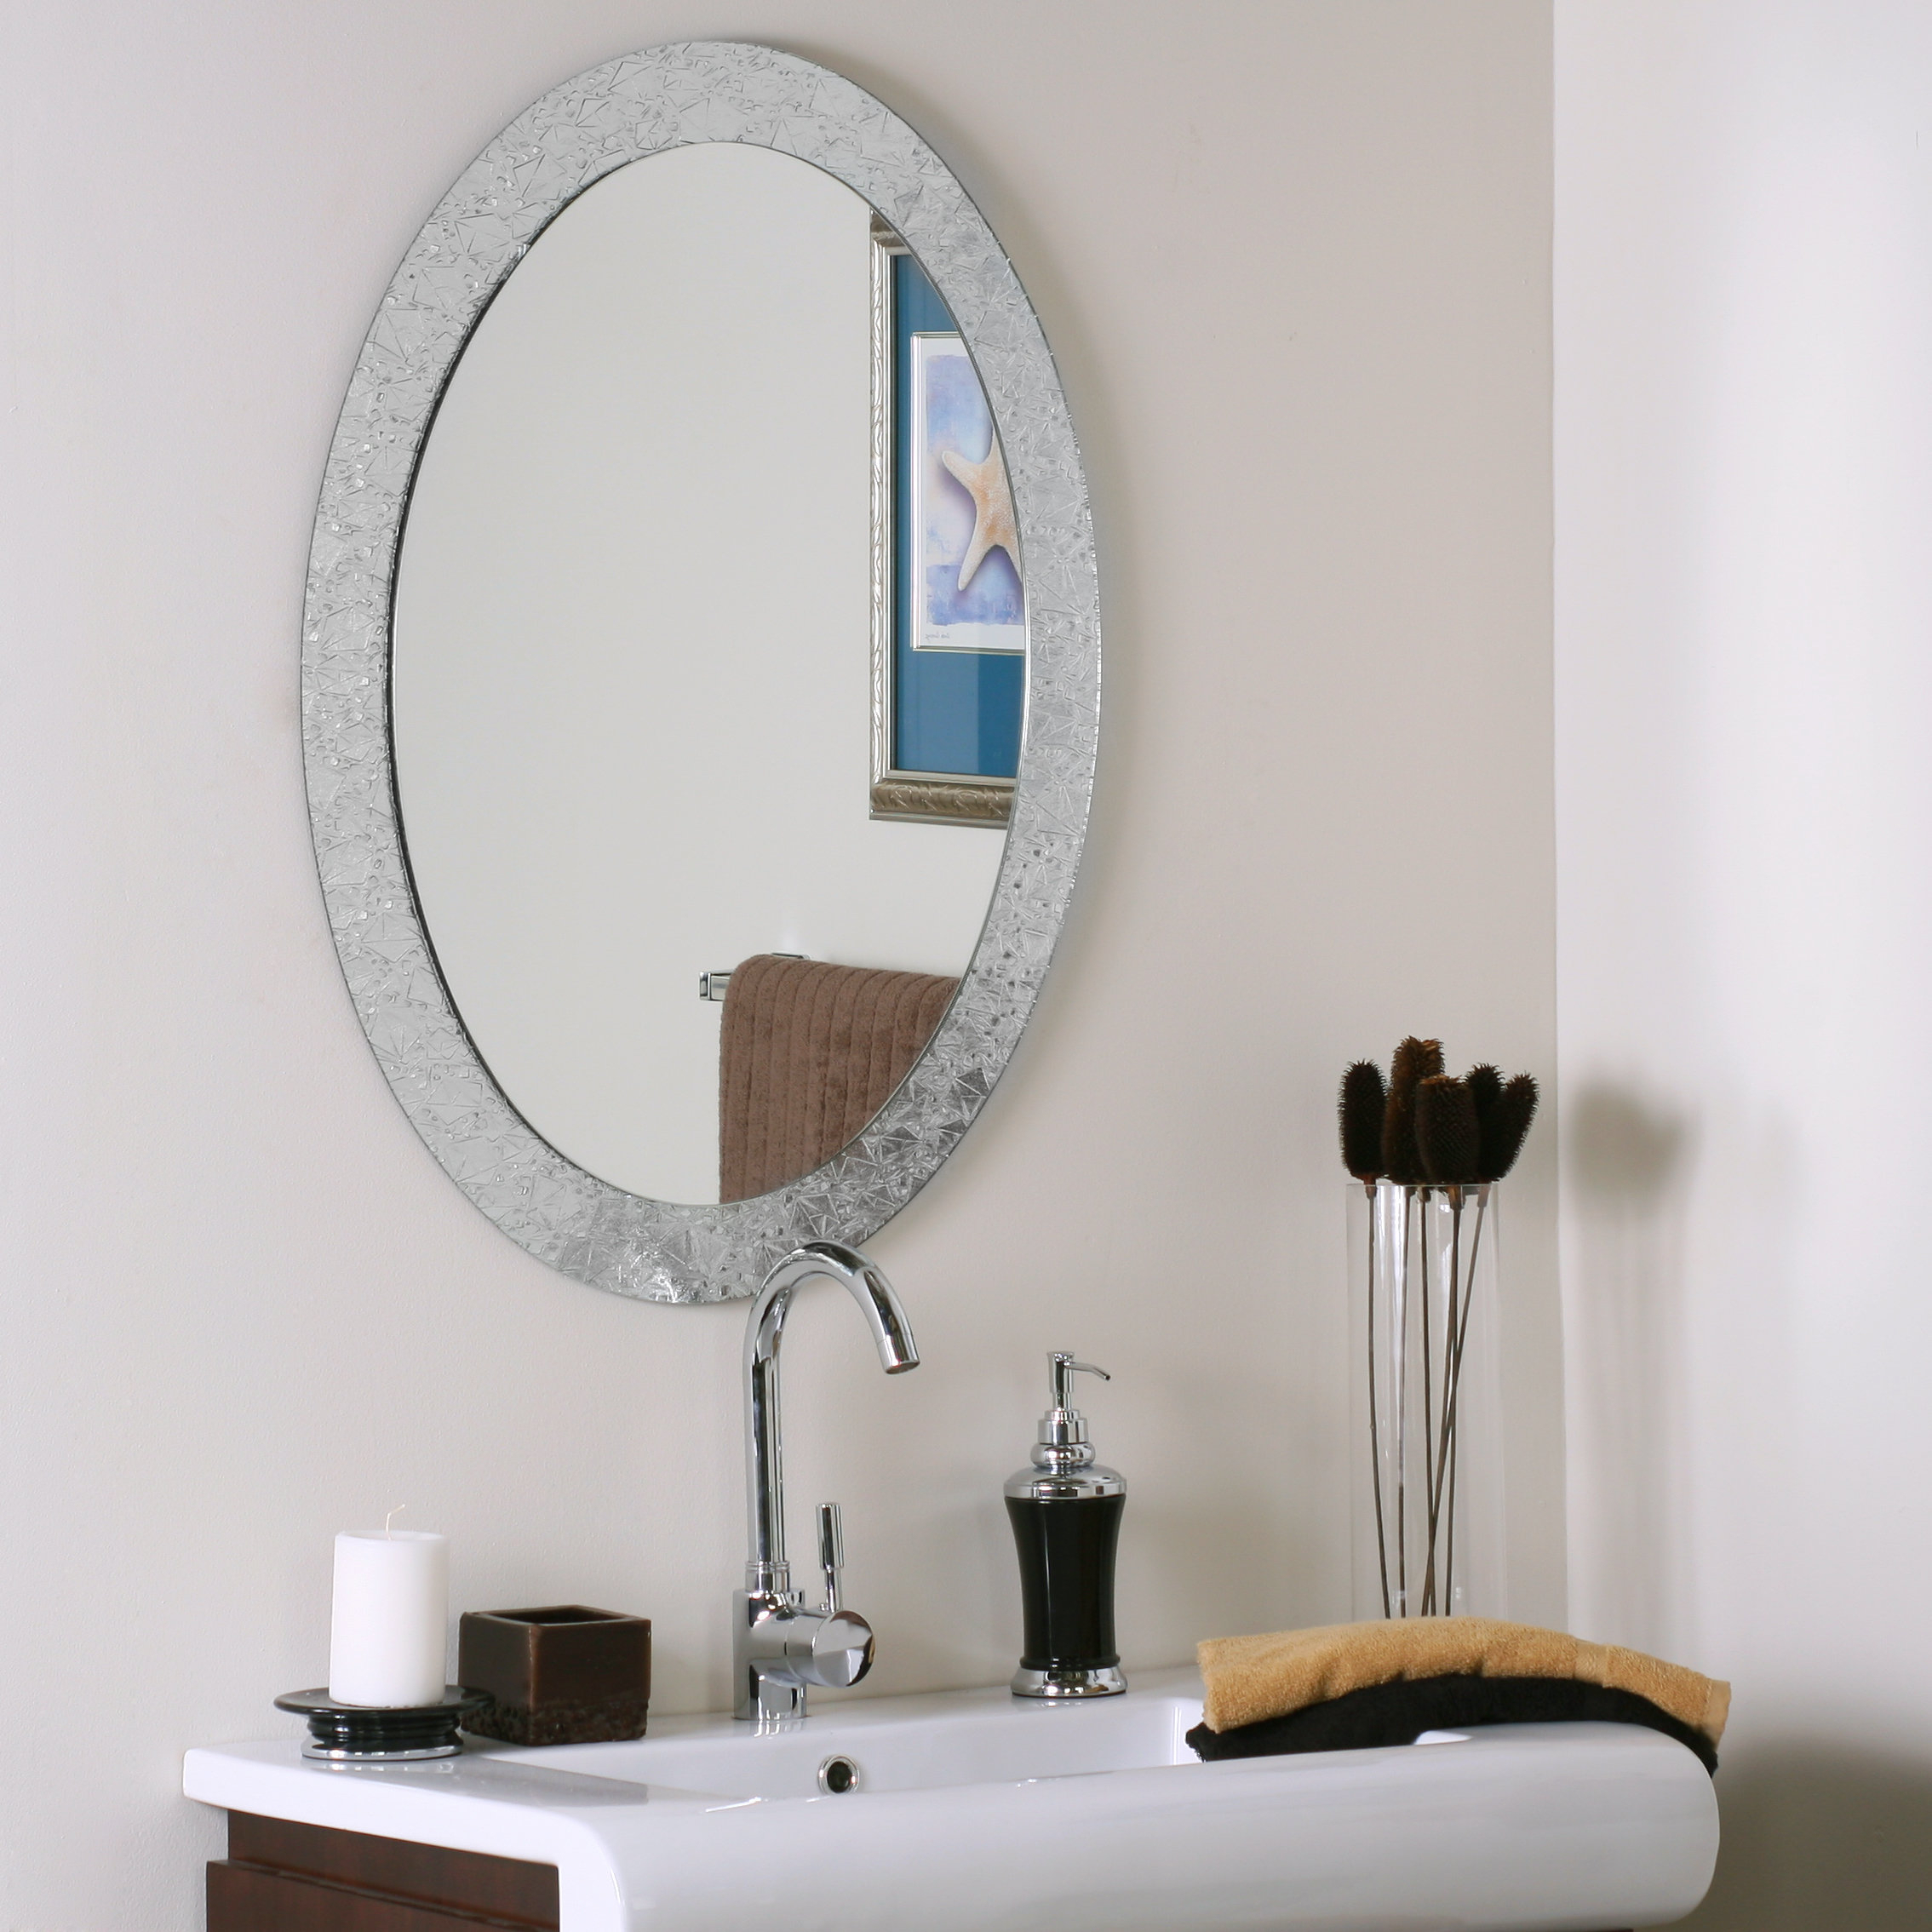 Willa Arlo Interiors Sajish Oval Crystal Wall Mirror Throughout Sajish Oval Crystal Wall Mirrors (View 2 of 30)